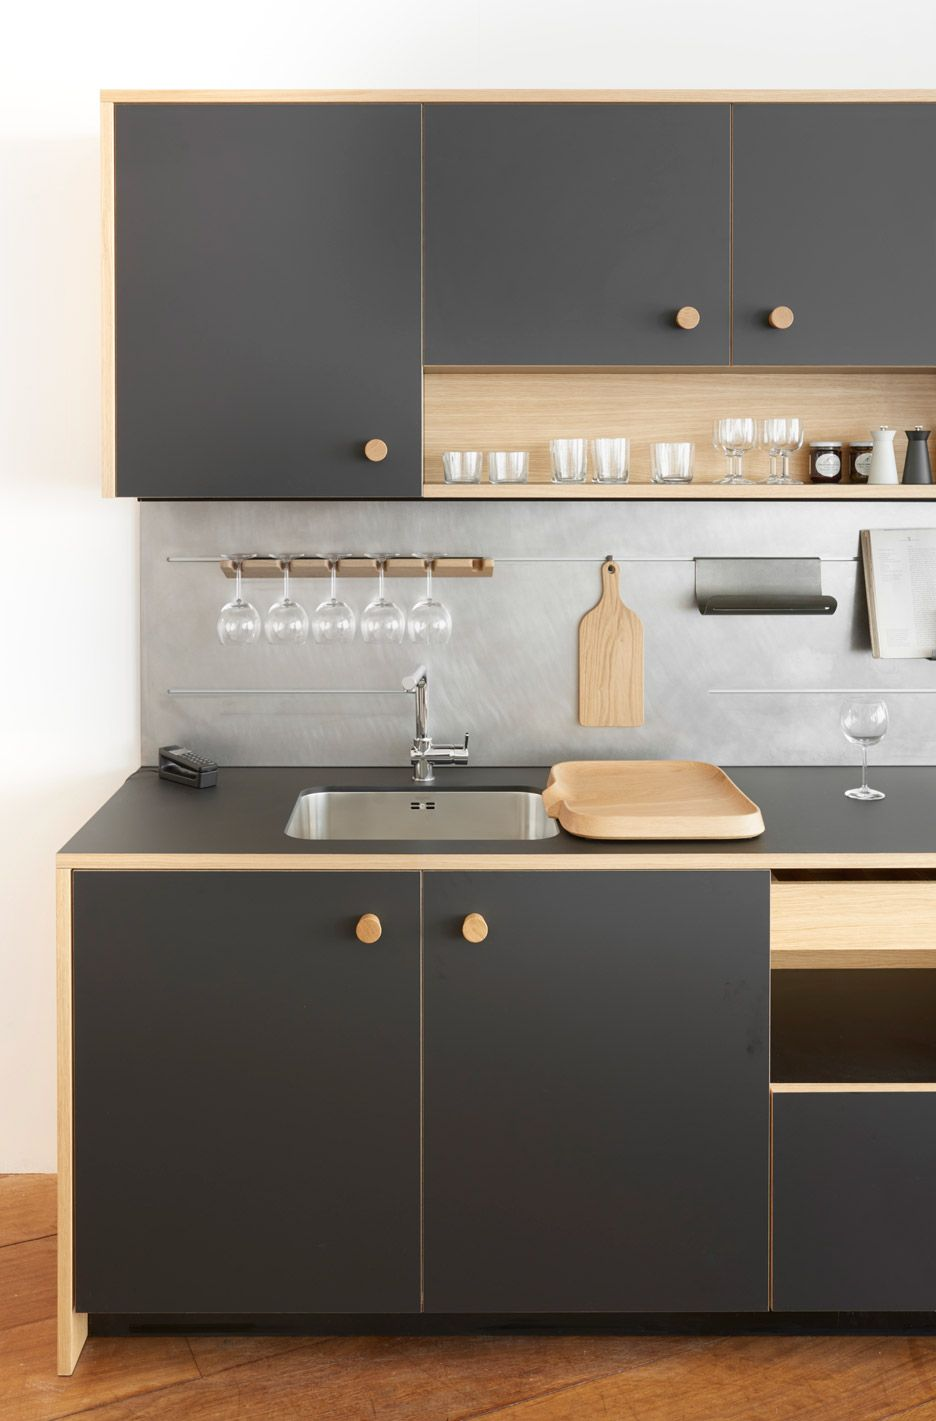 Lepic kitchen by jasper morrison would be so much better in actual